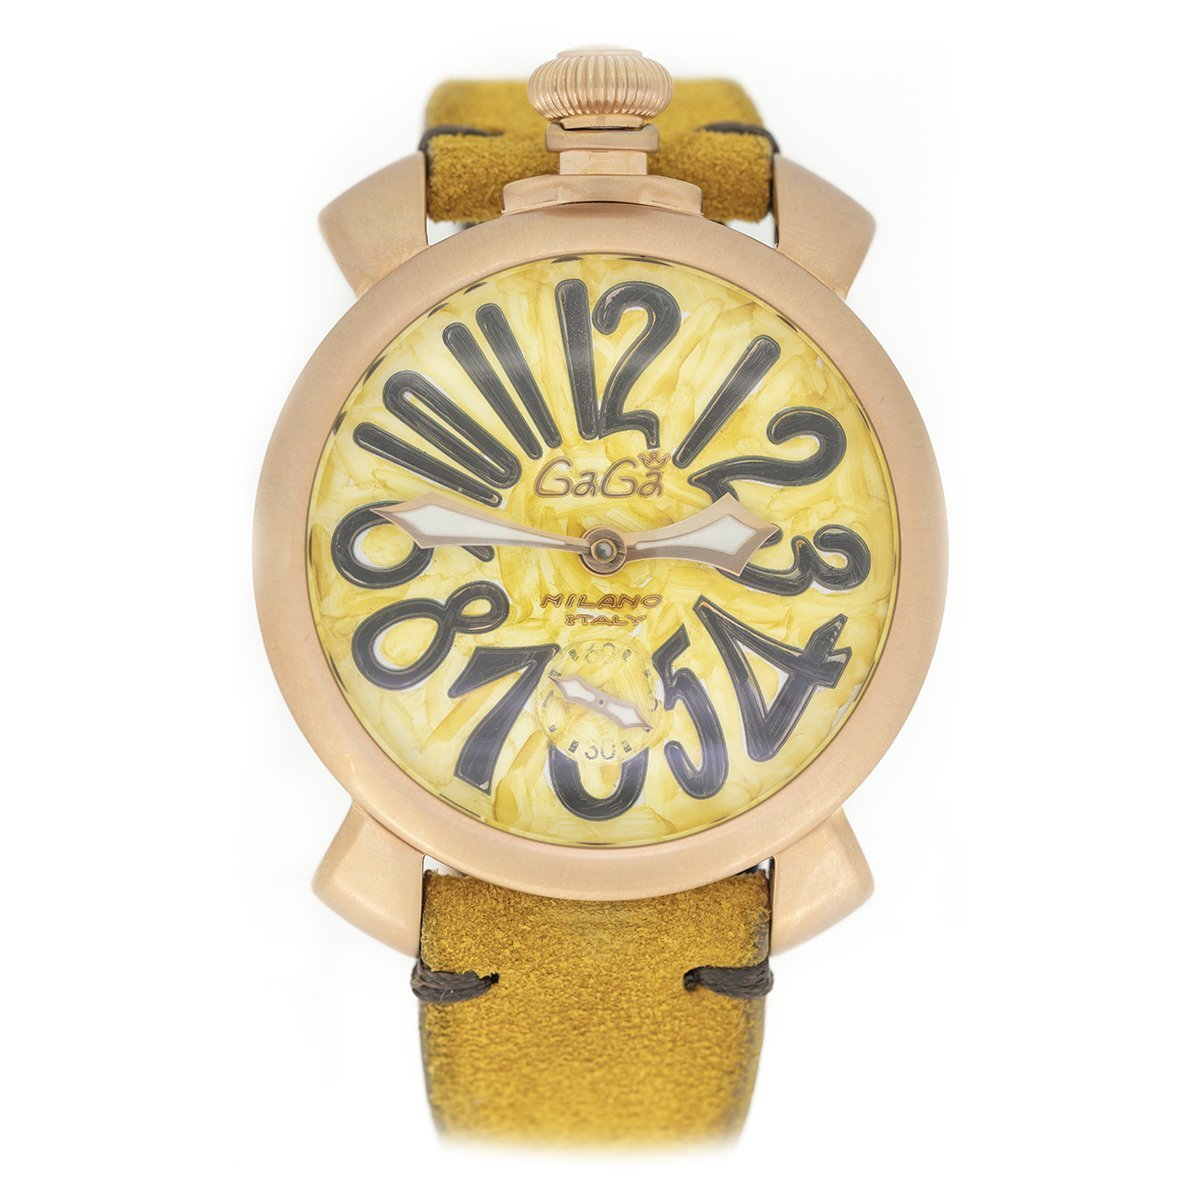 GaGà Milano Manuale 48MM Vintage Yellow - Watches & Crystals